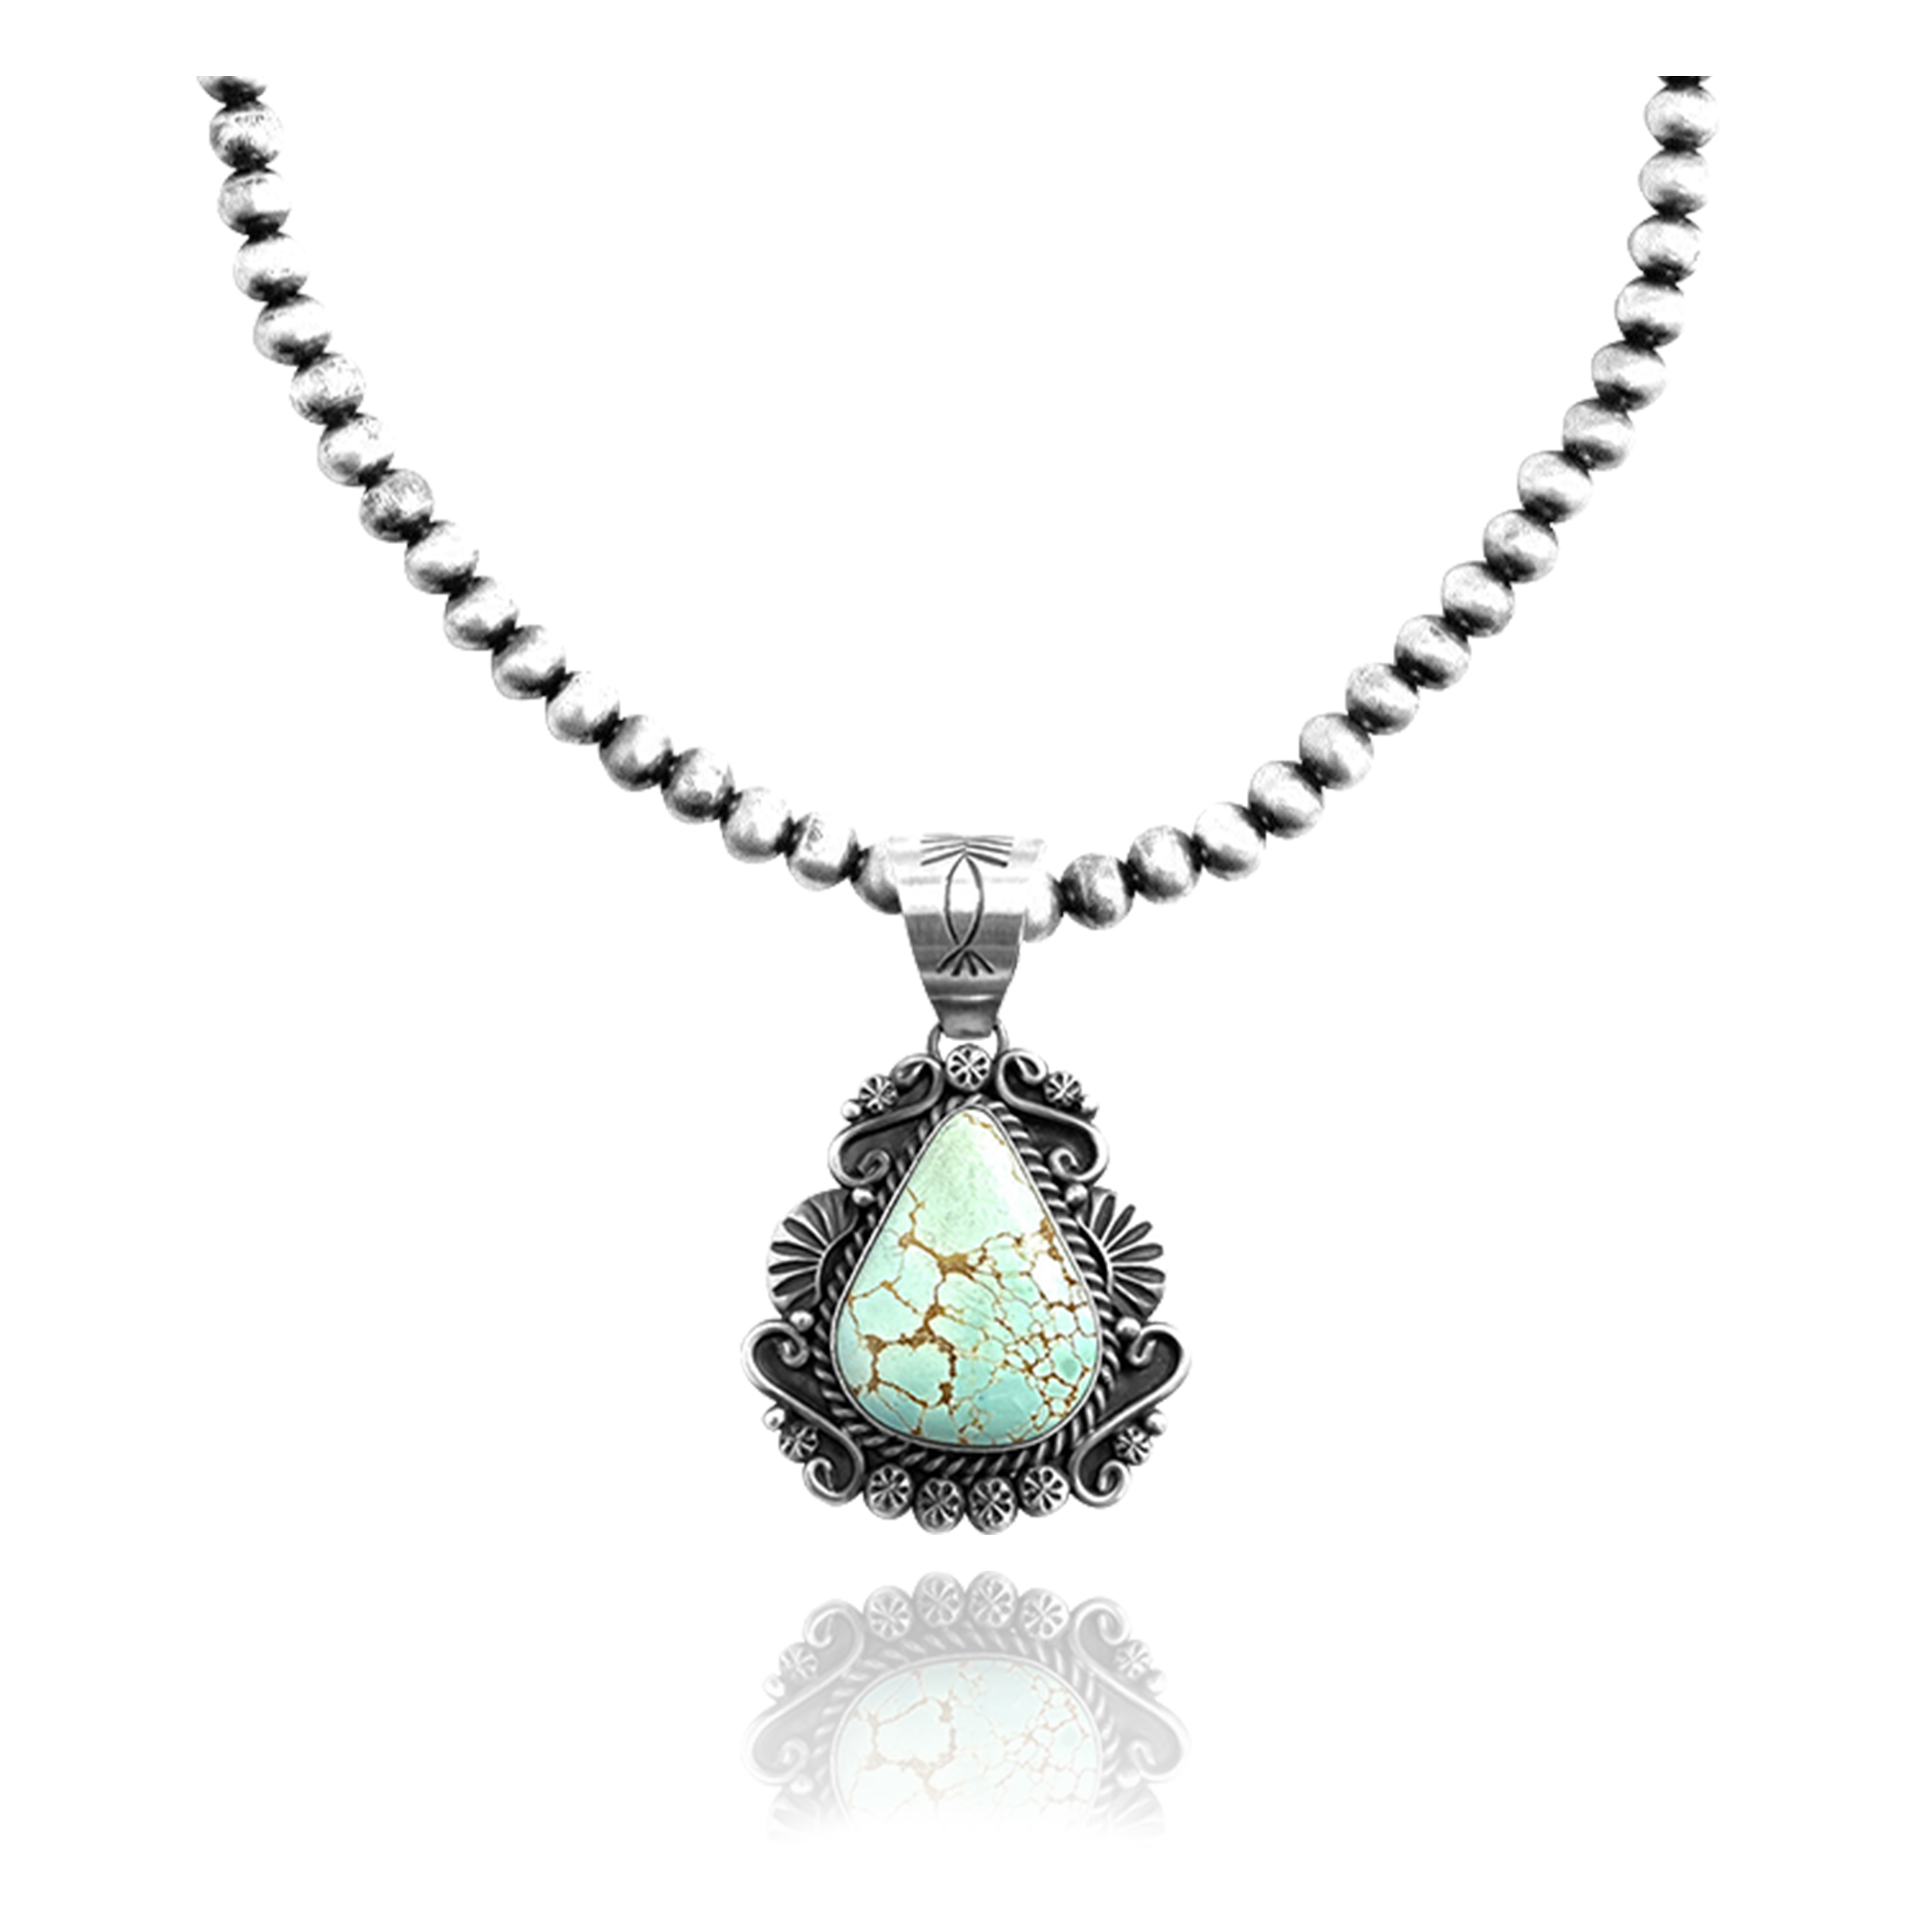 .925 Sterling Silver Certified Authentic Navajo Native American Natural Turquoise Necklace Pendant 35193